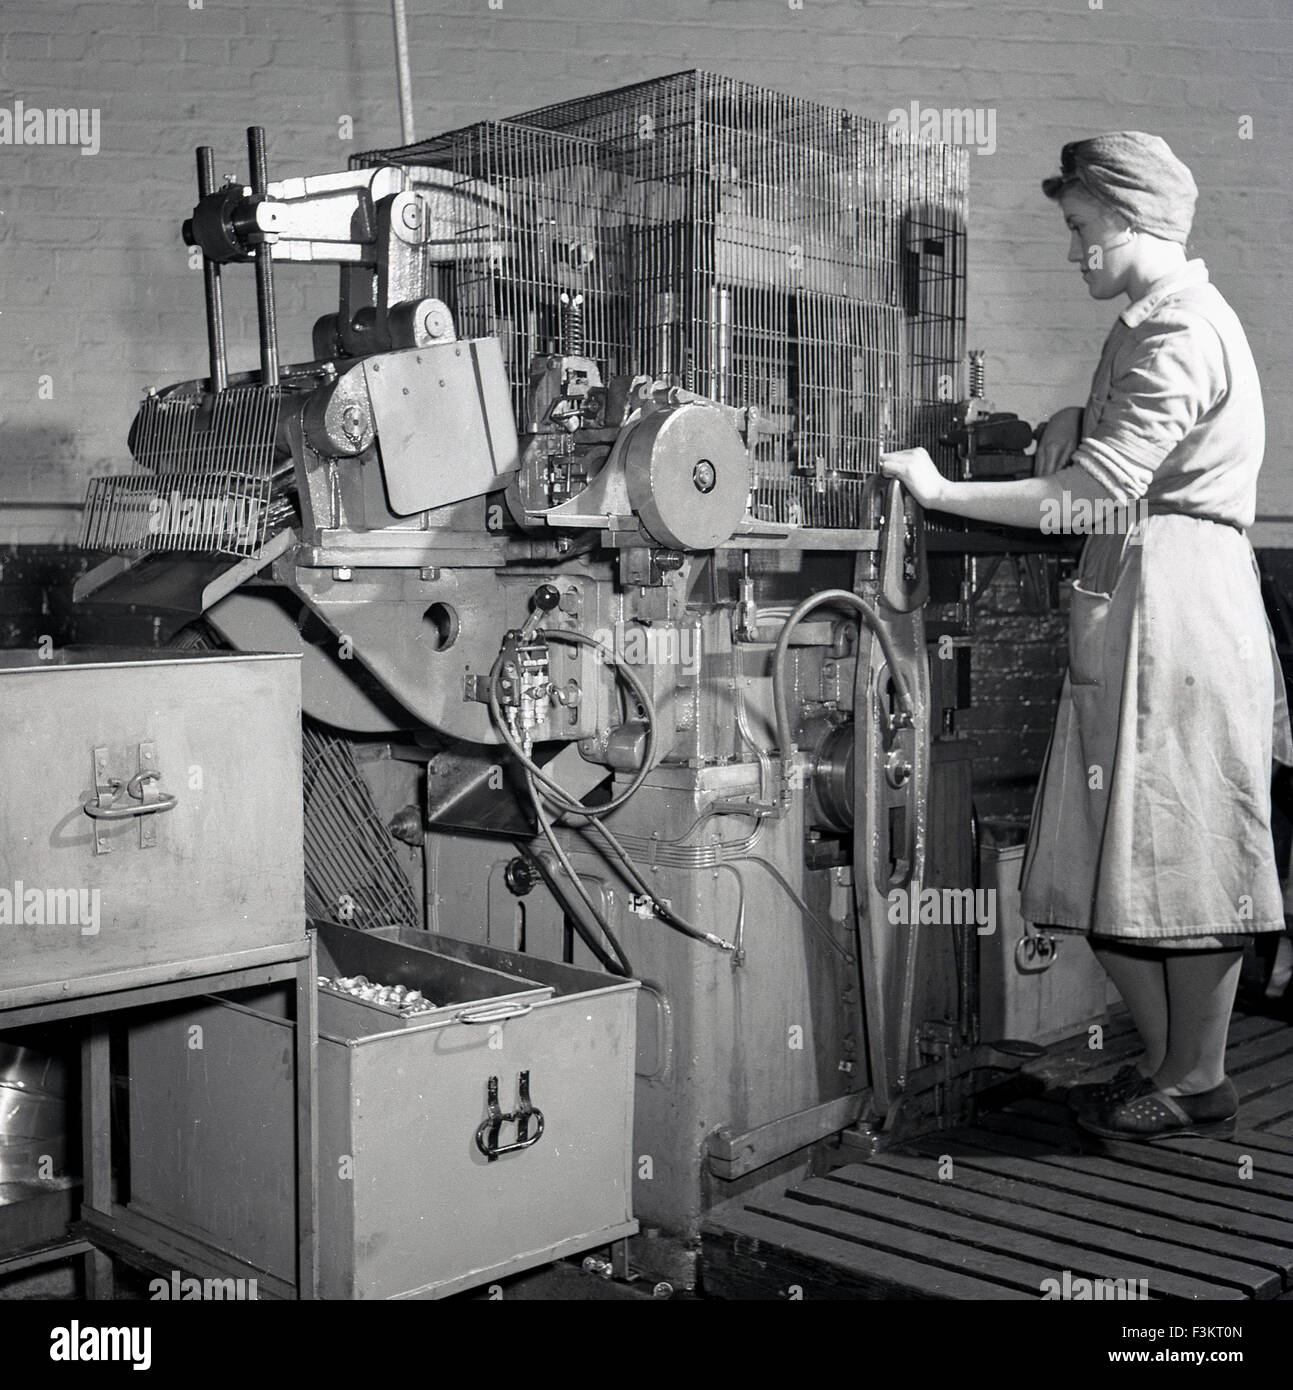 Ever Ready Battery Company Stock Photos Wiring Works Telford Historical 1950s Adult Female Operative Using A Large Machine At The British